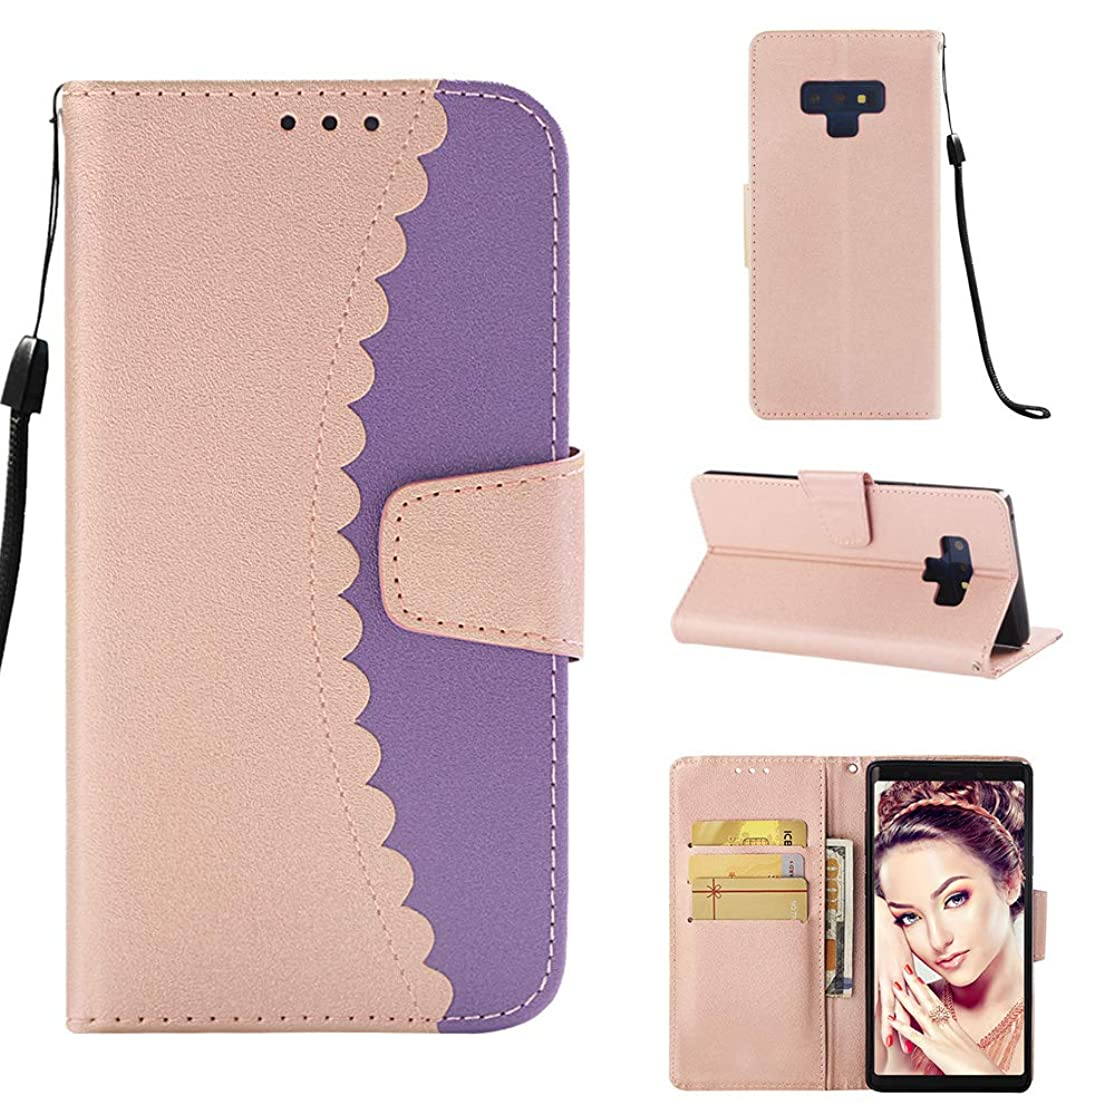 iPromama Samsung Galaxy Note 9 Wallet Case, iPromama [Folio Style] Premium Card Cases Stand Feature Skin Flip Cover for Samsung Galaxy Note 9 [Rose Gold + Purple] outotmdb5